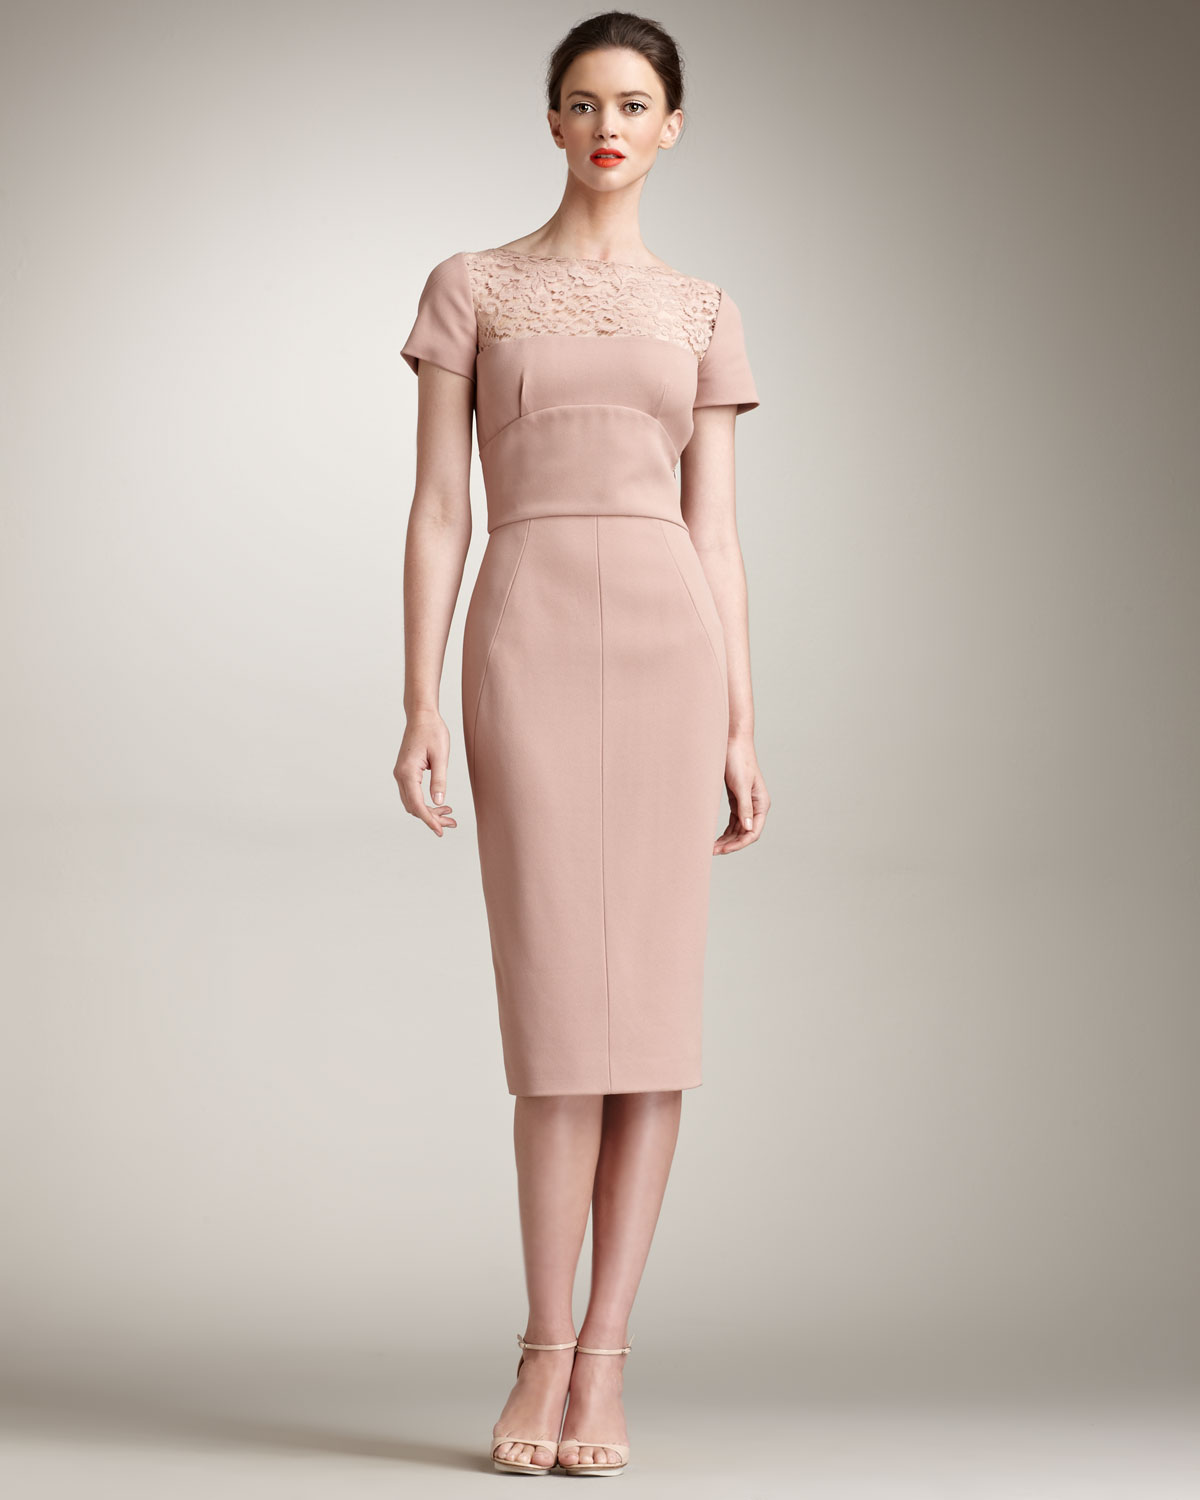 Lyst - Elie Saab Lace-yoke Fitted Dress in Pink